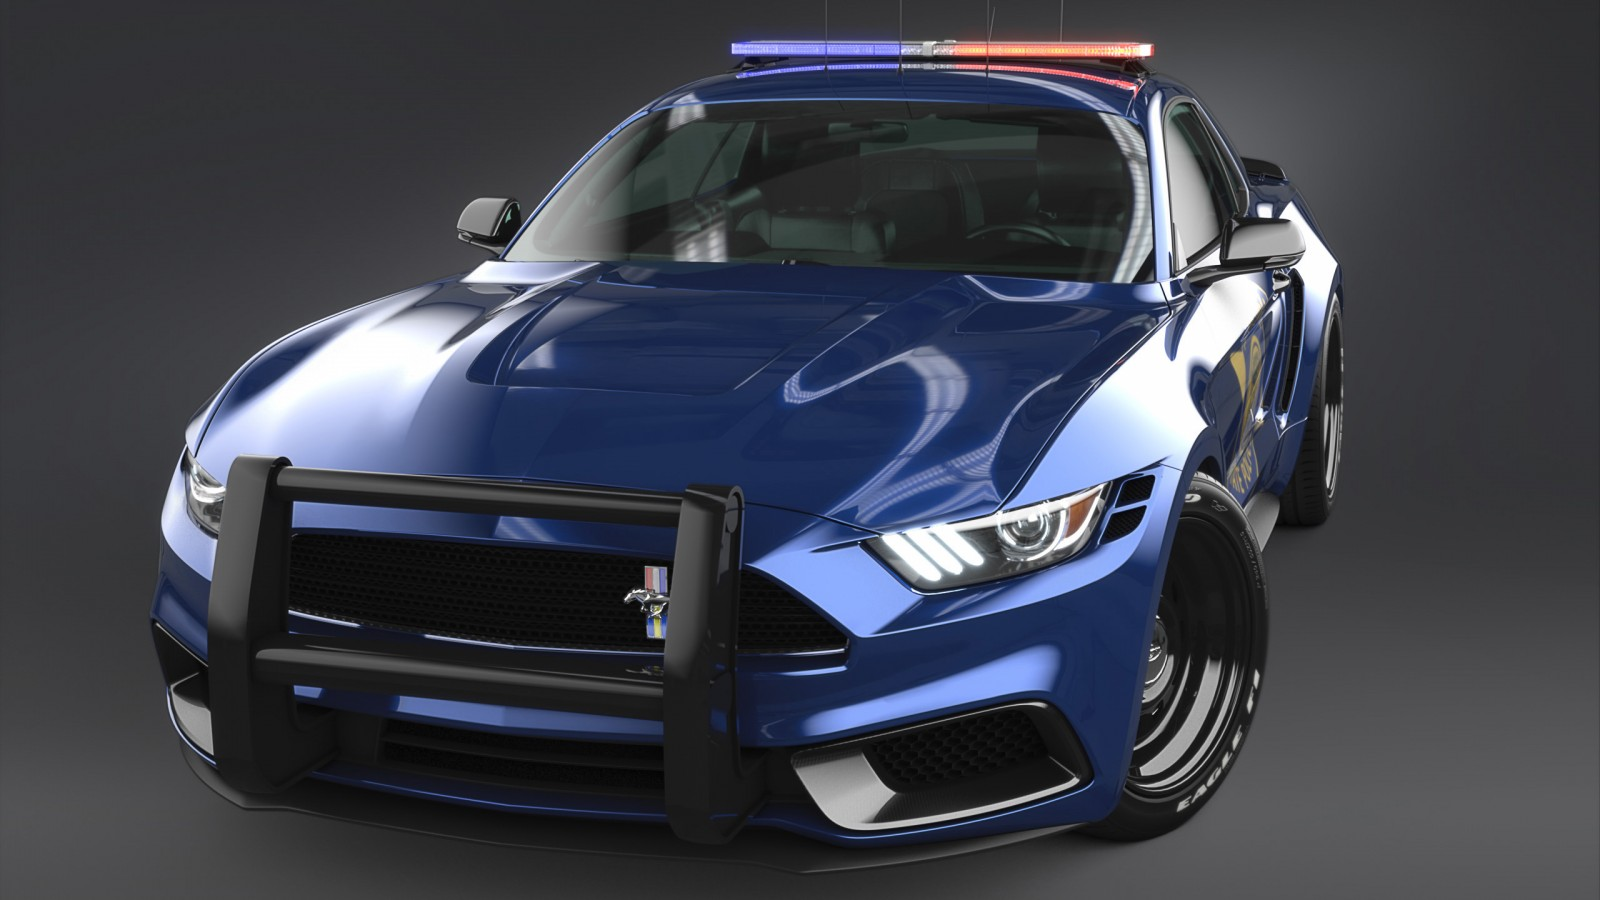 Shelby Gt500 2016 >> 2017 Ford Mustang NotchBack Design Police 3 Wallpaper | HD Car Wallpapers | ID #7650